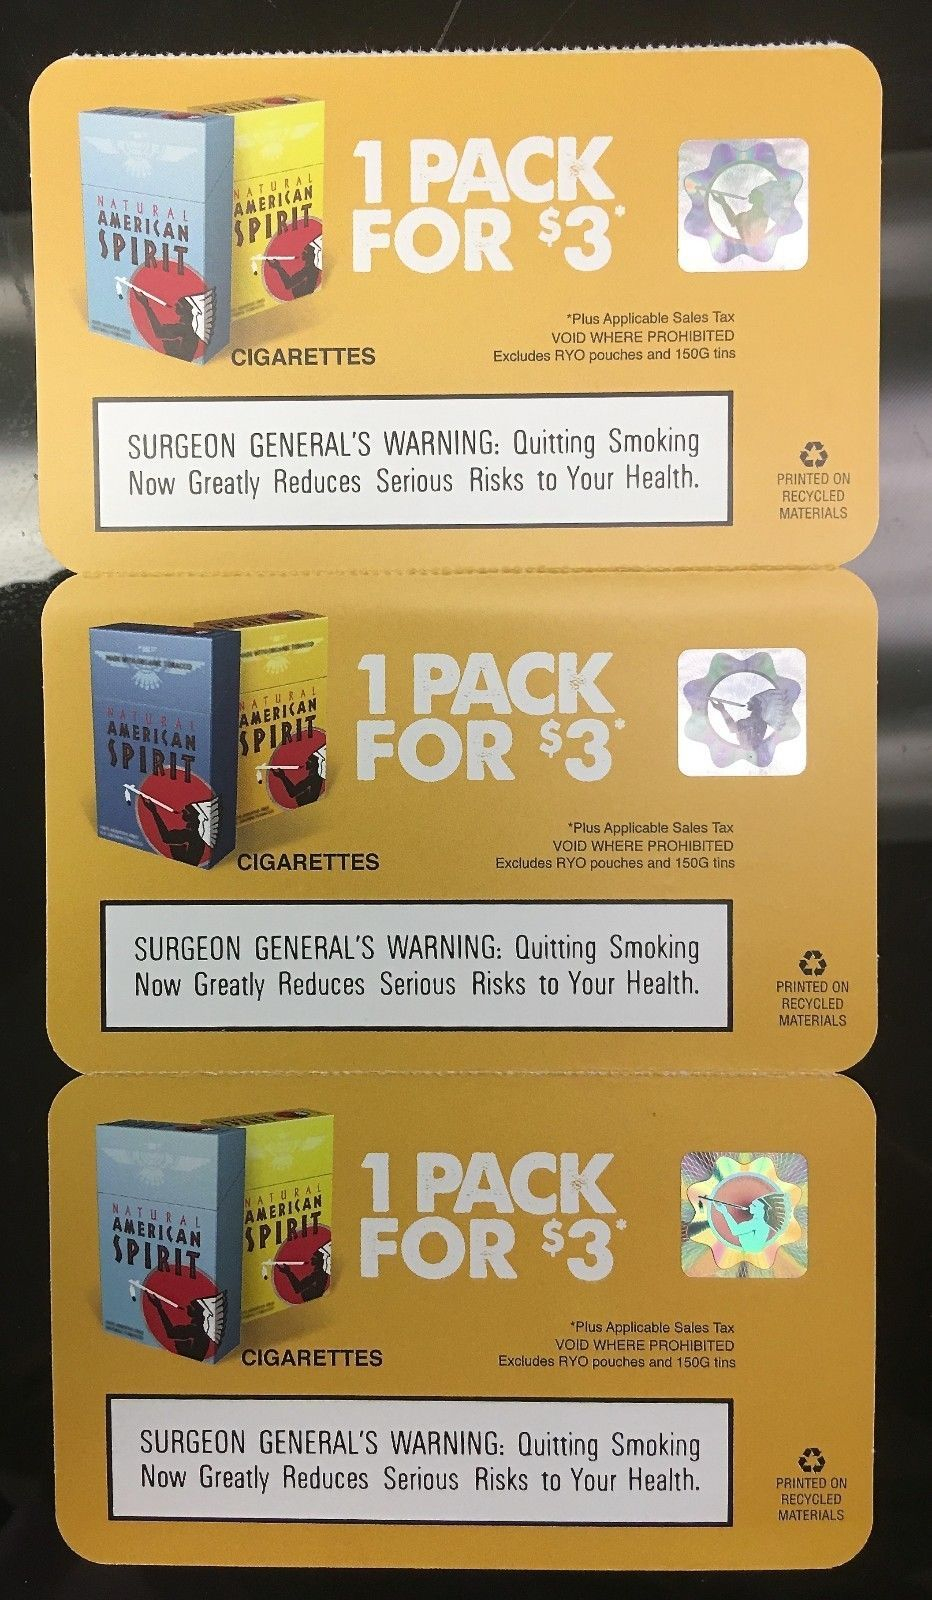 Free Pack Of Cigarettes Coupon - Wow - Image Results | Cigarros - Free Pack Of Cigarettes Printable Coupon